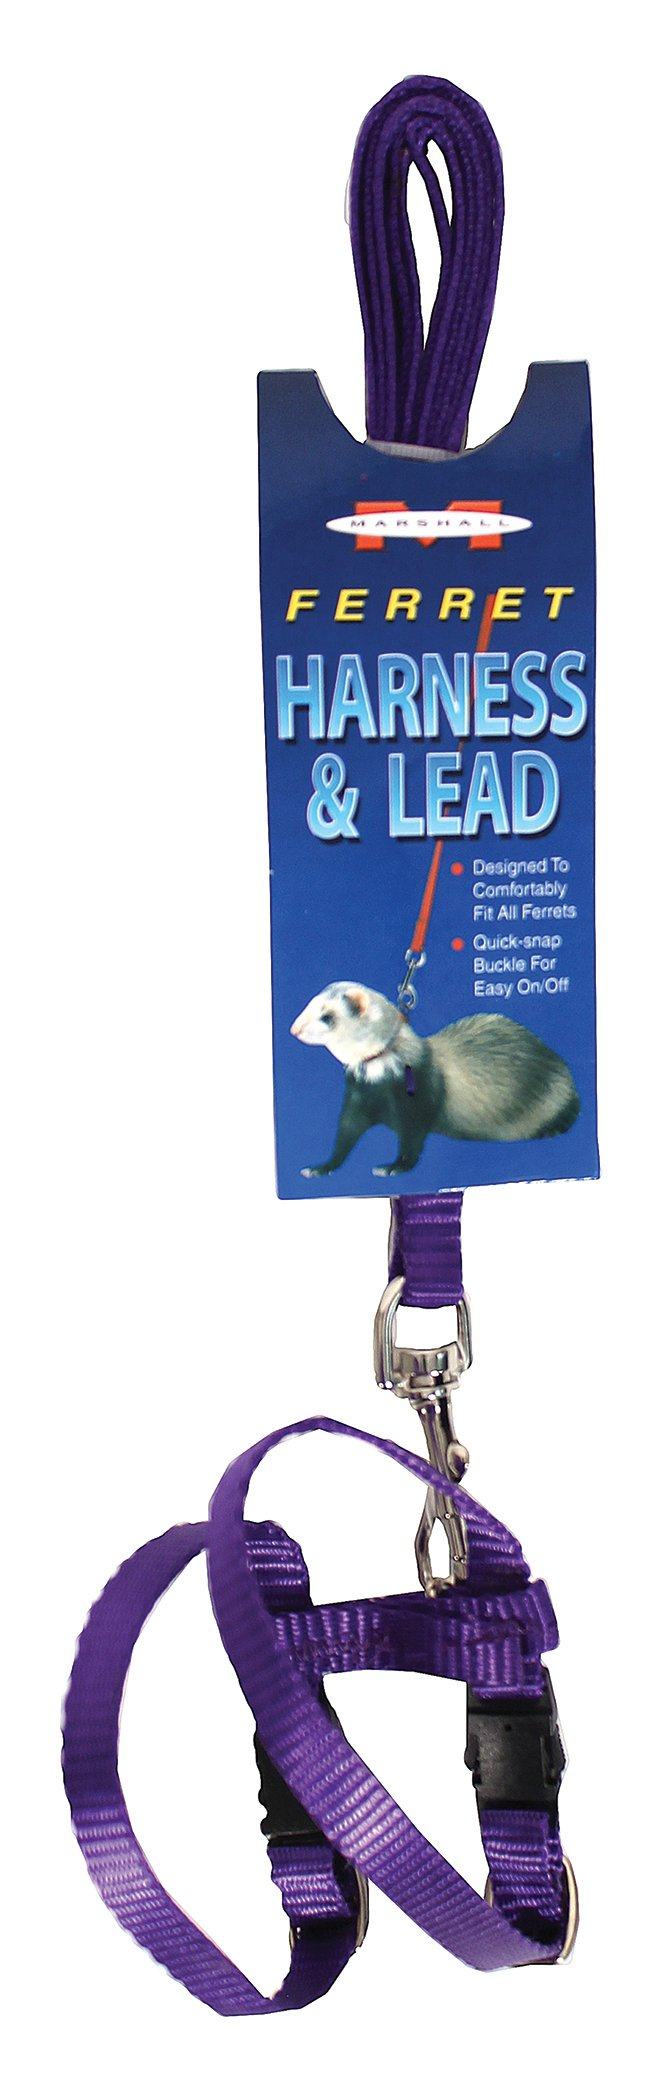 MARSHALL PET PRODUCTS 572018 Ferret Harness & Lead Purple, 48 in by Marshall Pet Products